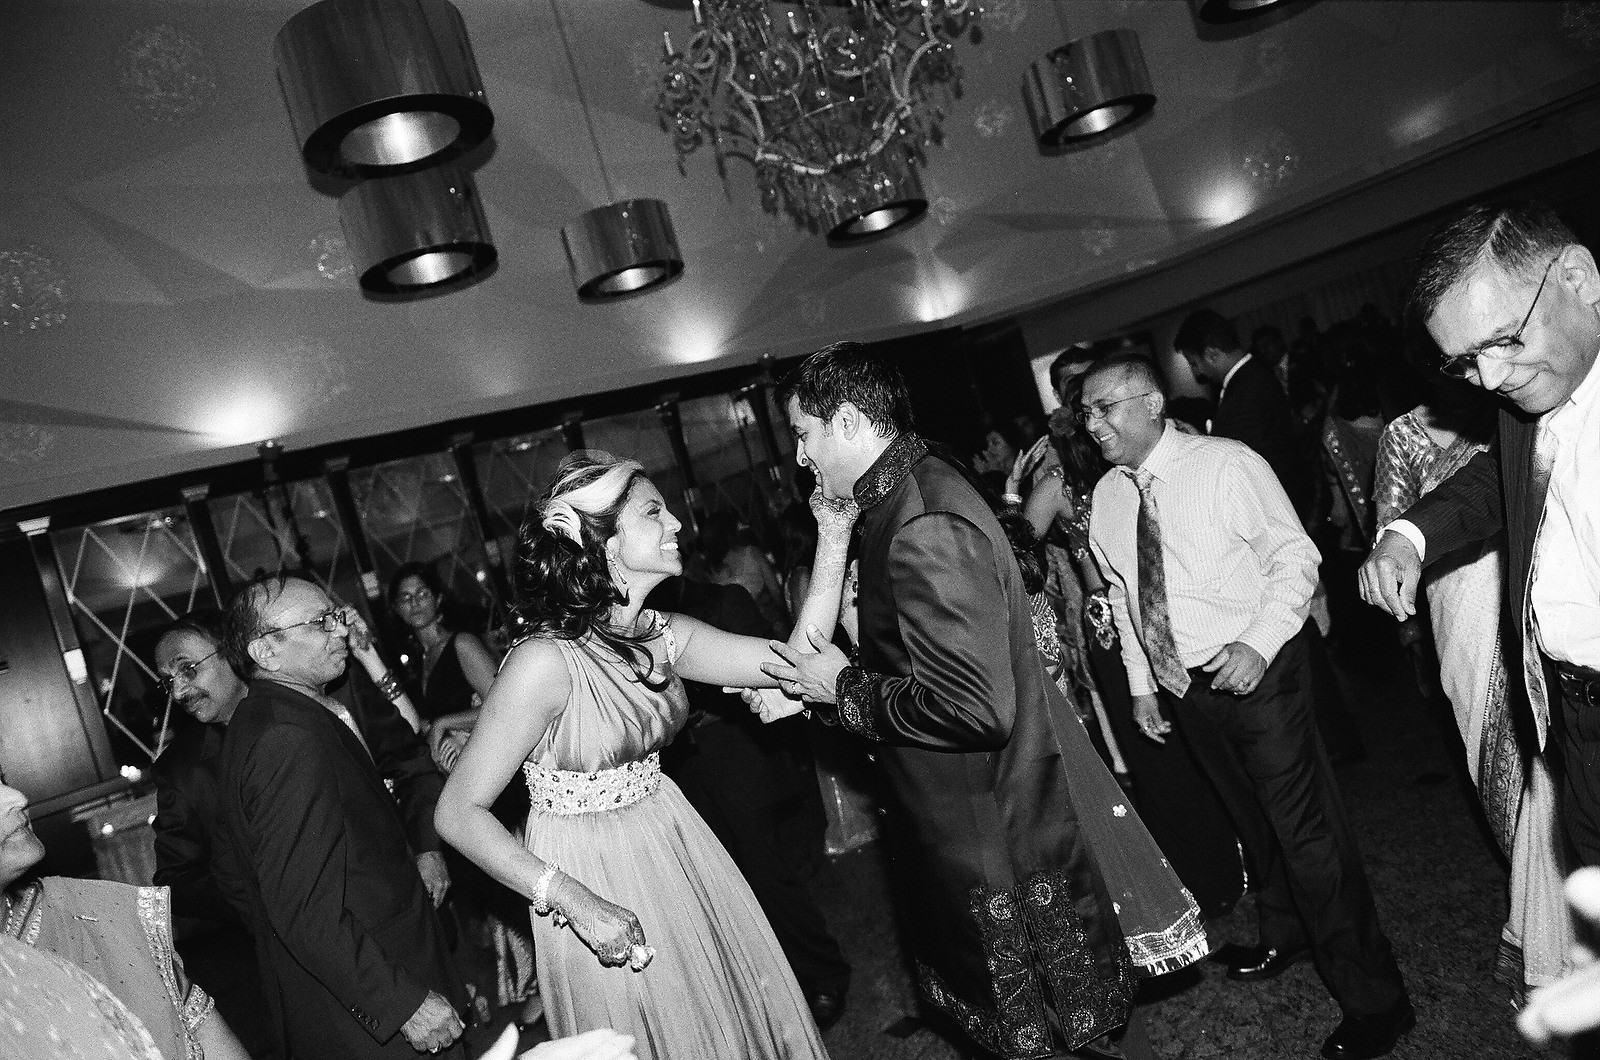 black and whit photo of wedding couple dancing